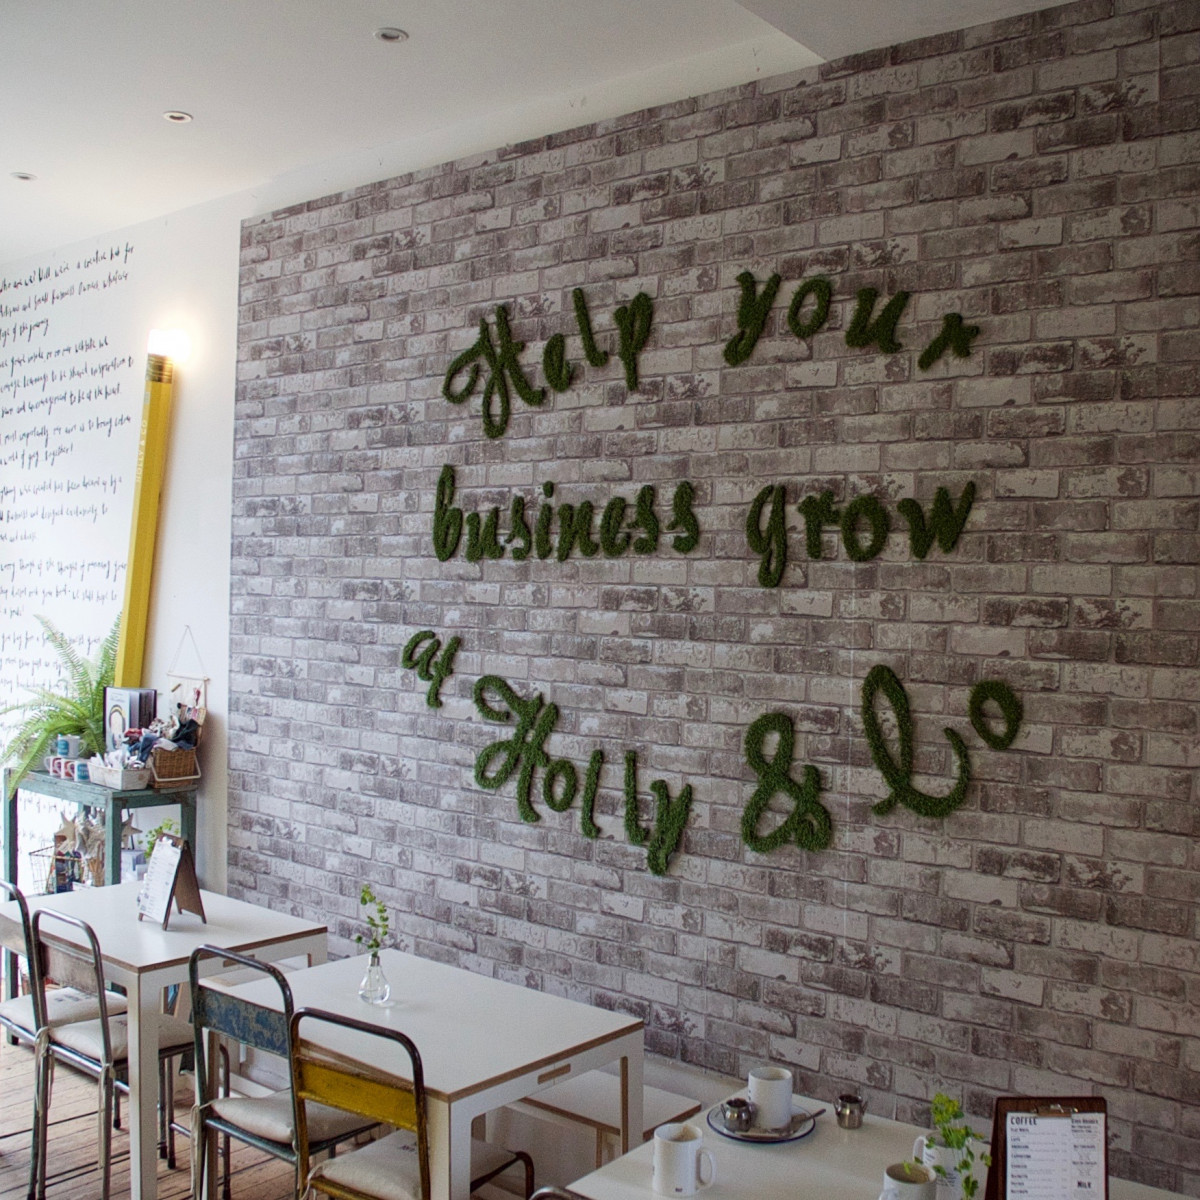 Spring grow your business